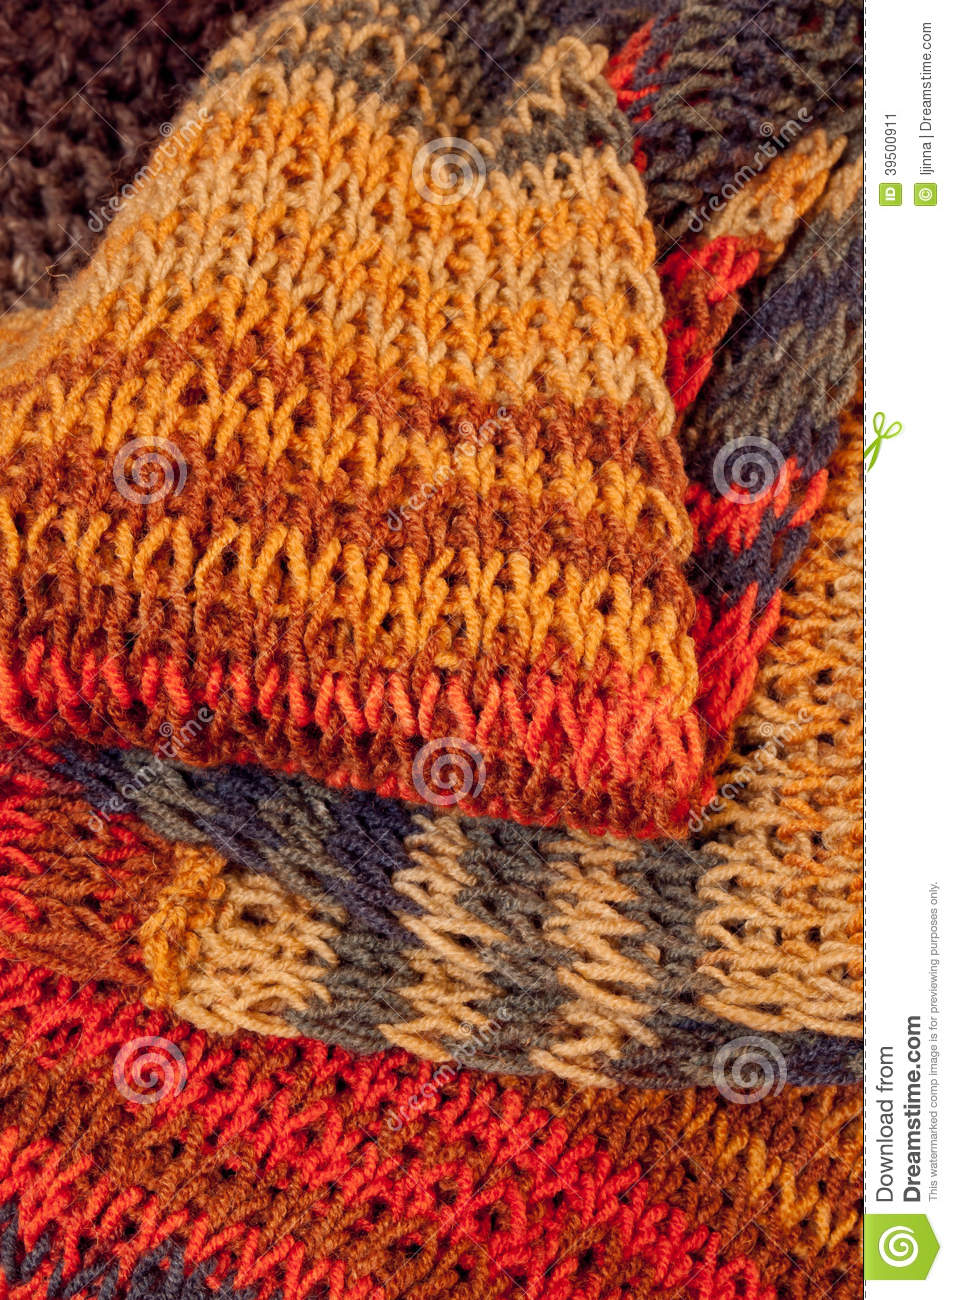 Knitted colorful wintry scarf